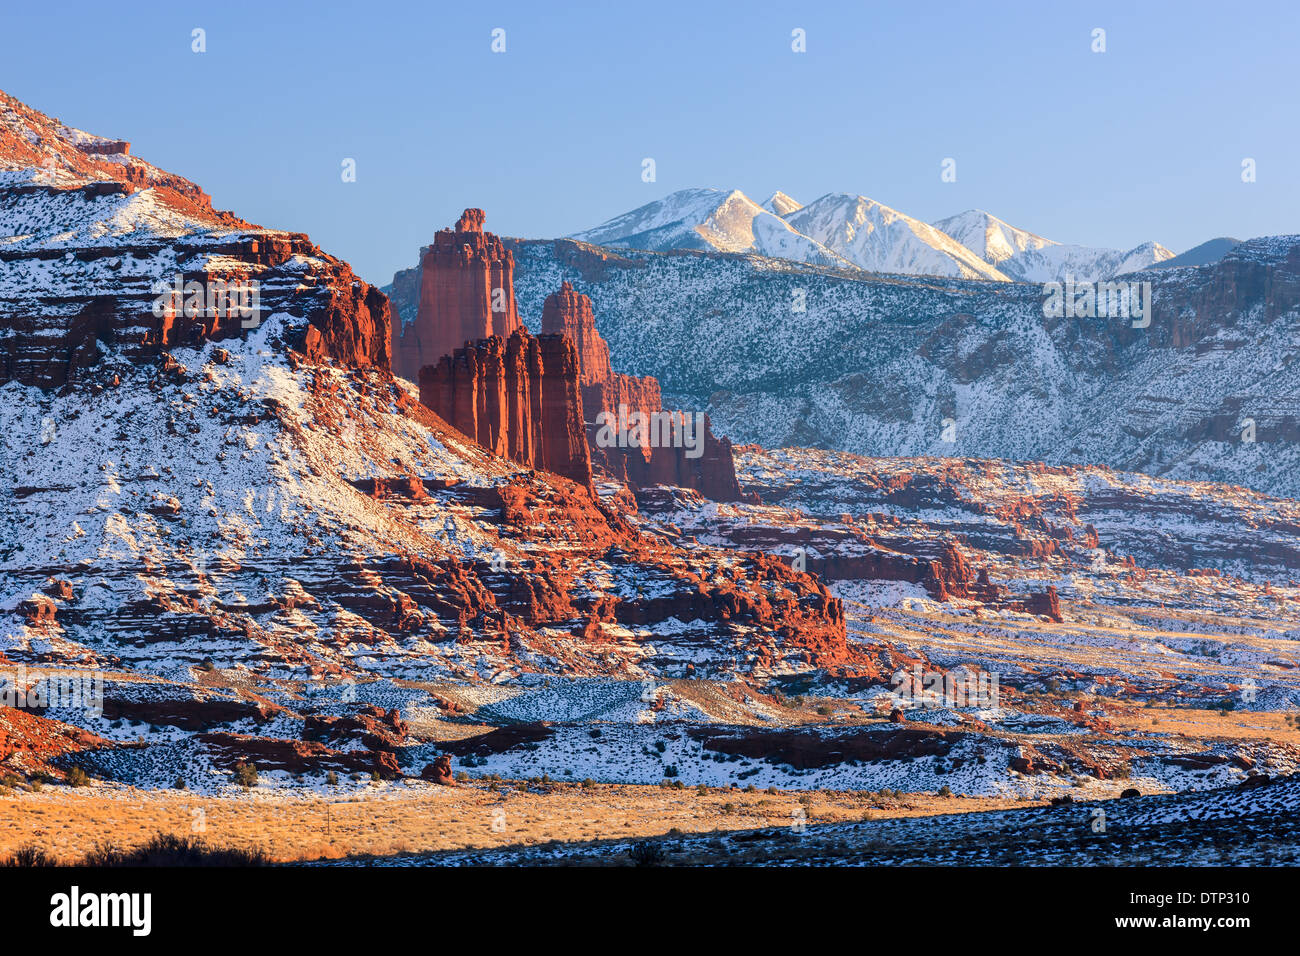 Winter sunset at the Fisher Towers, near Moab, Utah - USA - Stock Image